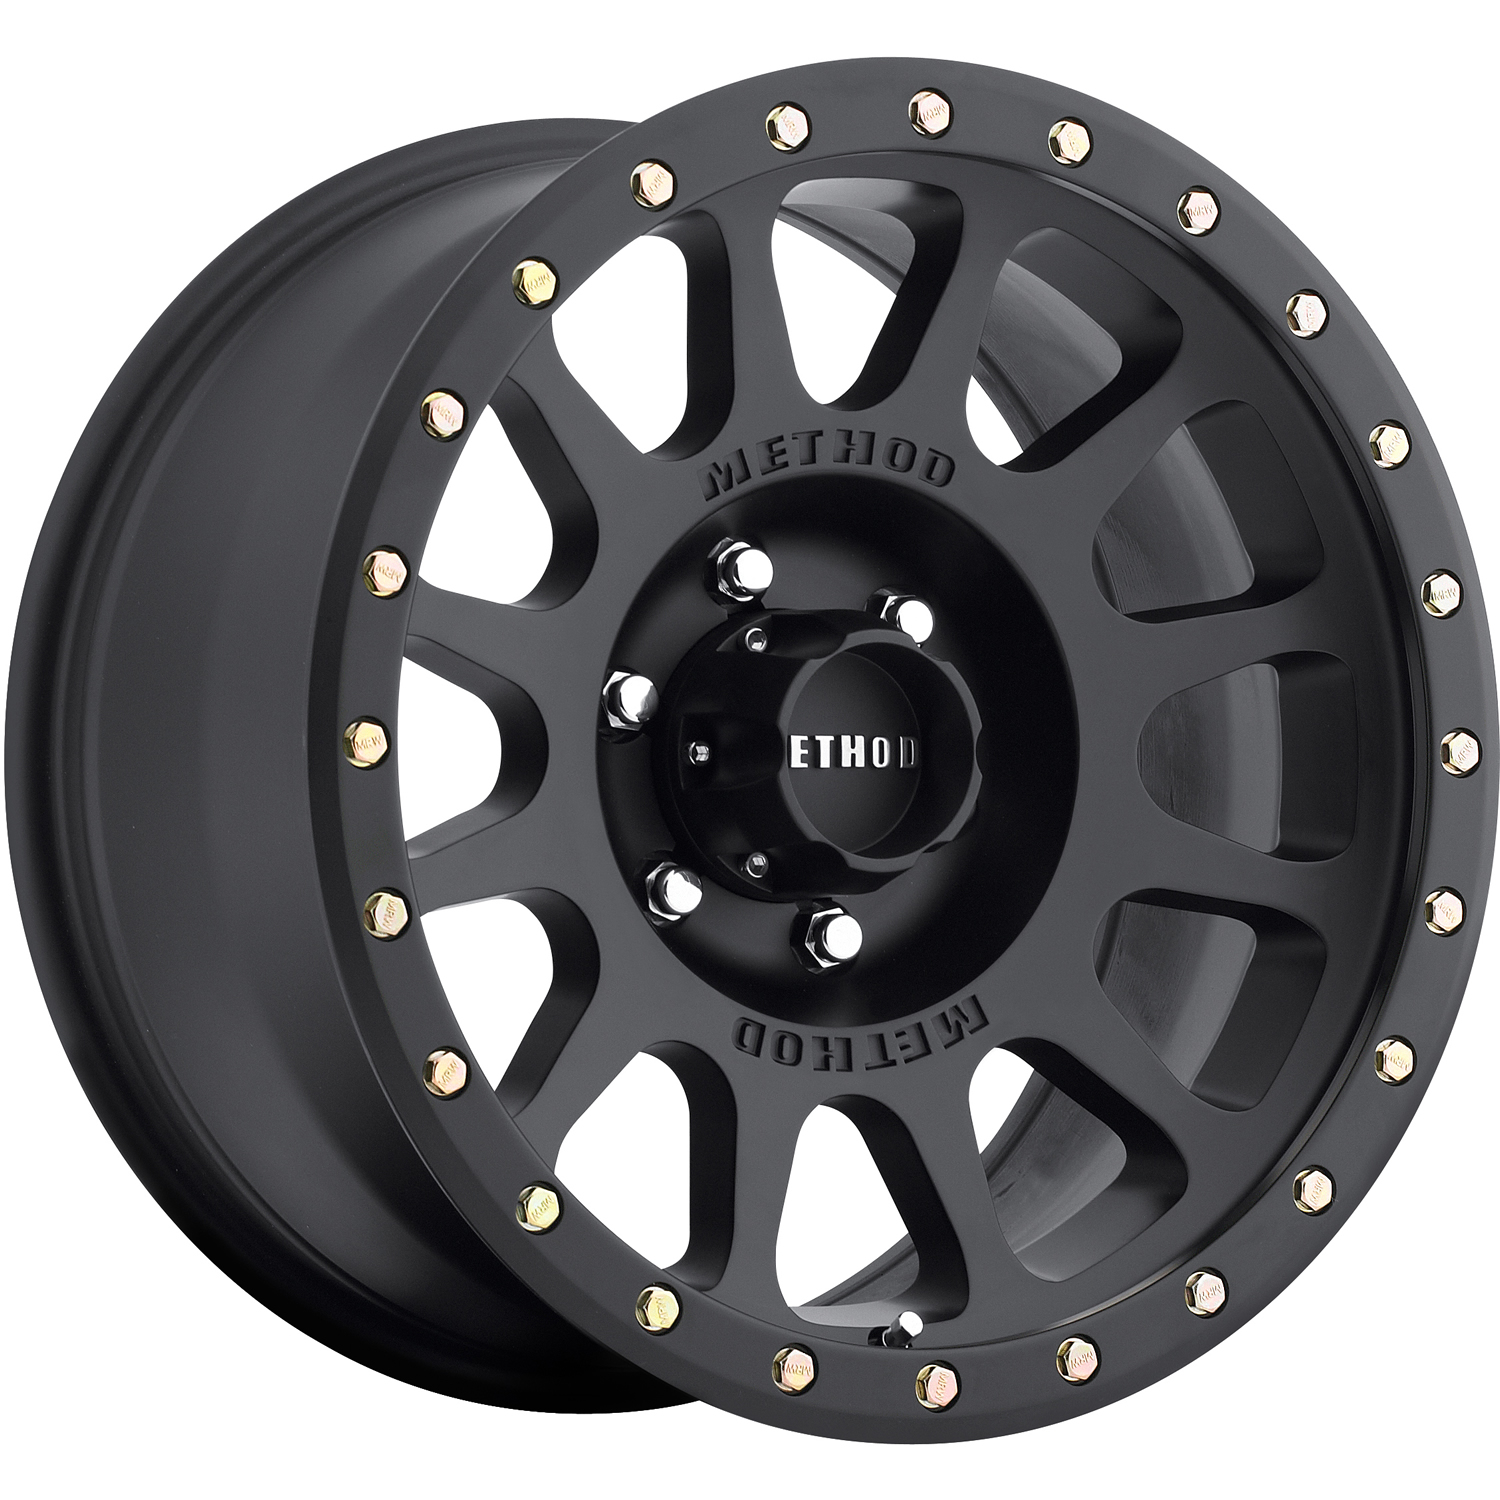 Method NV 17x8.5 0mm | MR30578580500H